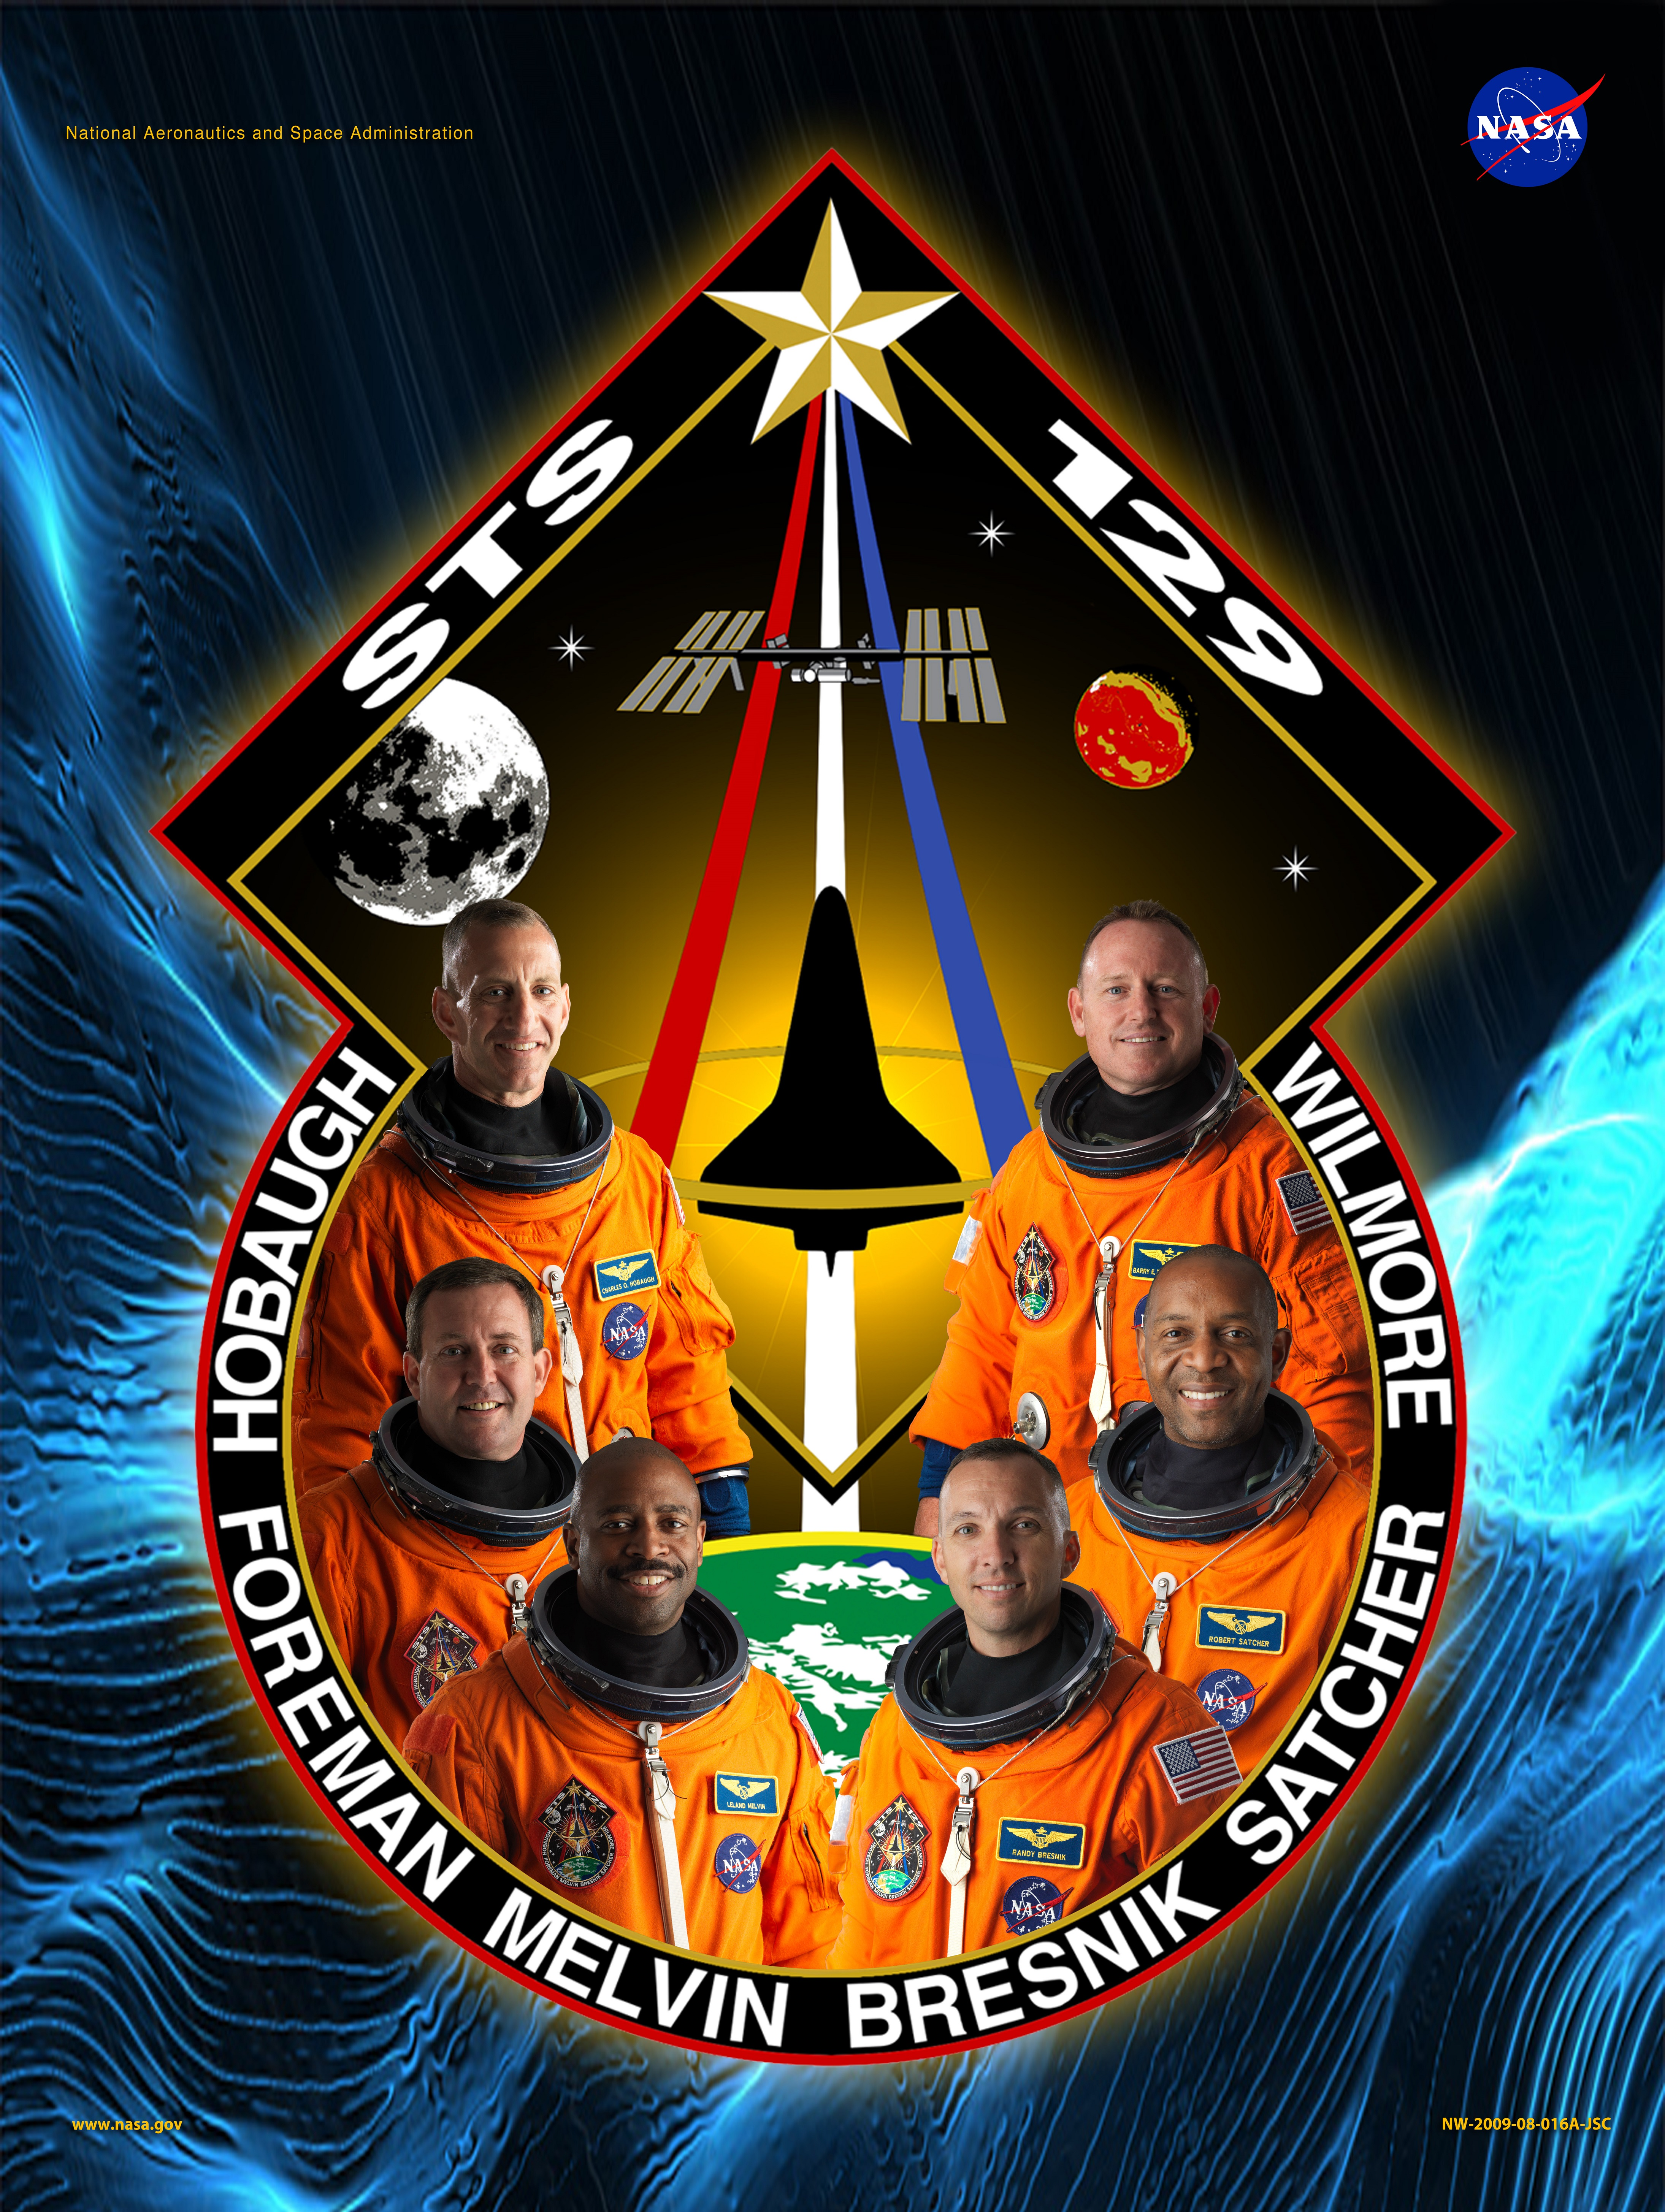 NASA Space Shuttle Program images STS 129 Mission Poster HD wallpaper and background photos